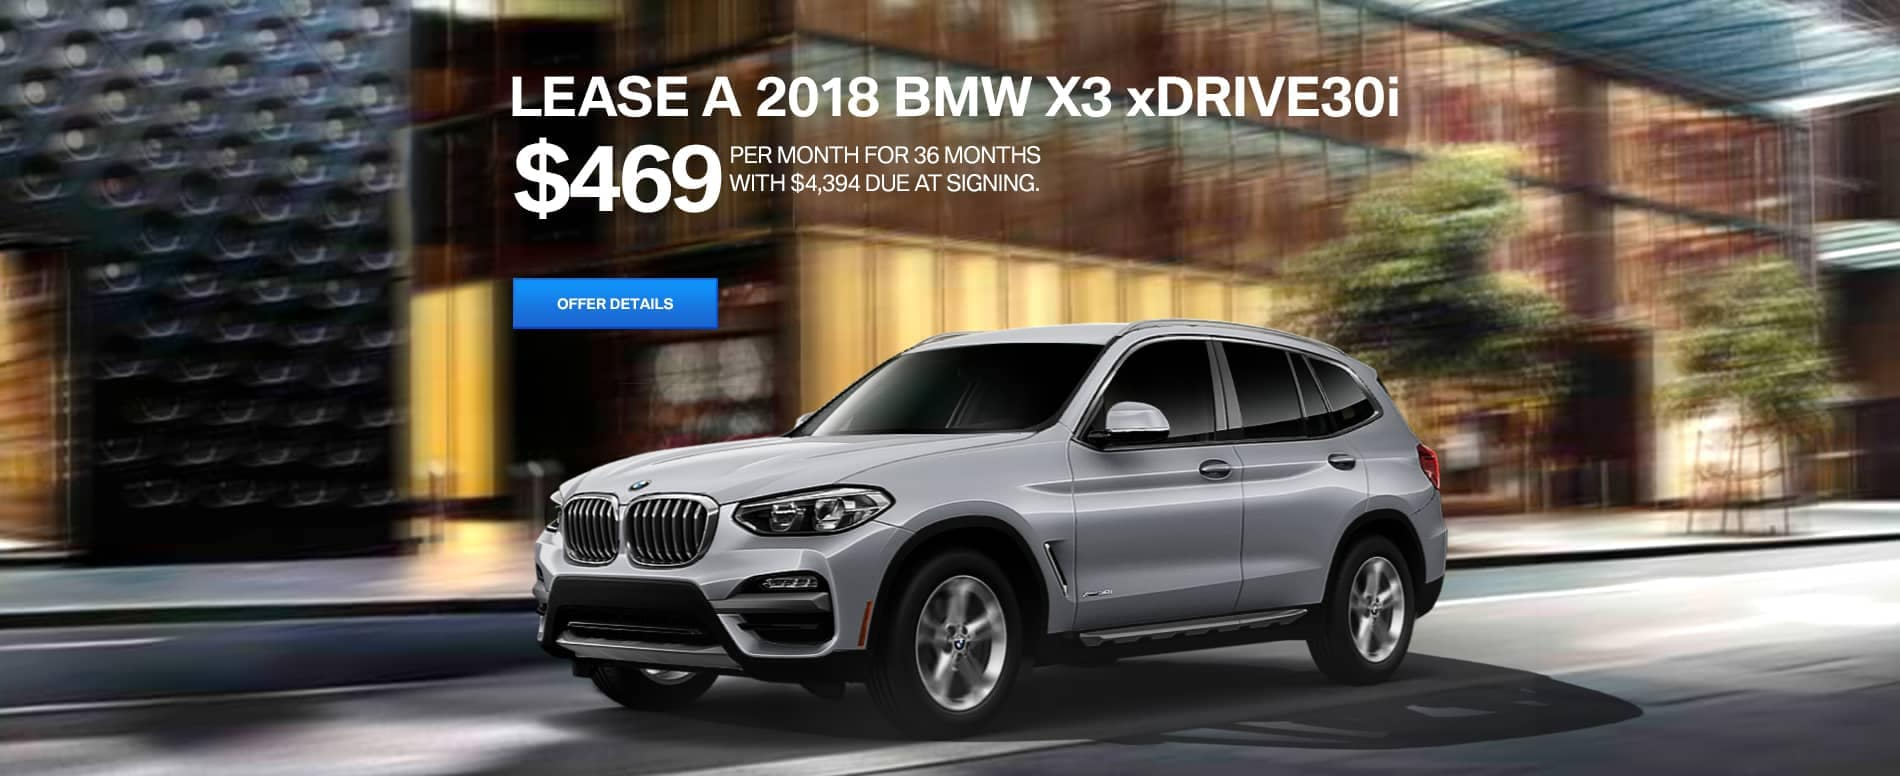 2018_X3_xDrive30i_NATIONAL_$469_Lease